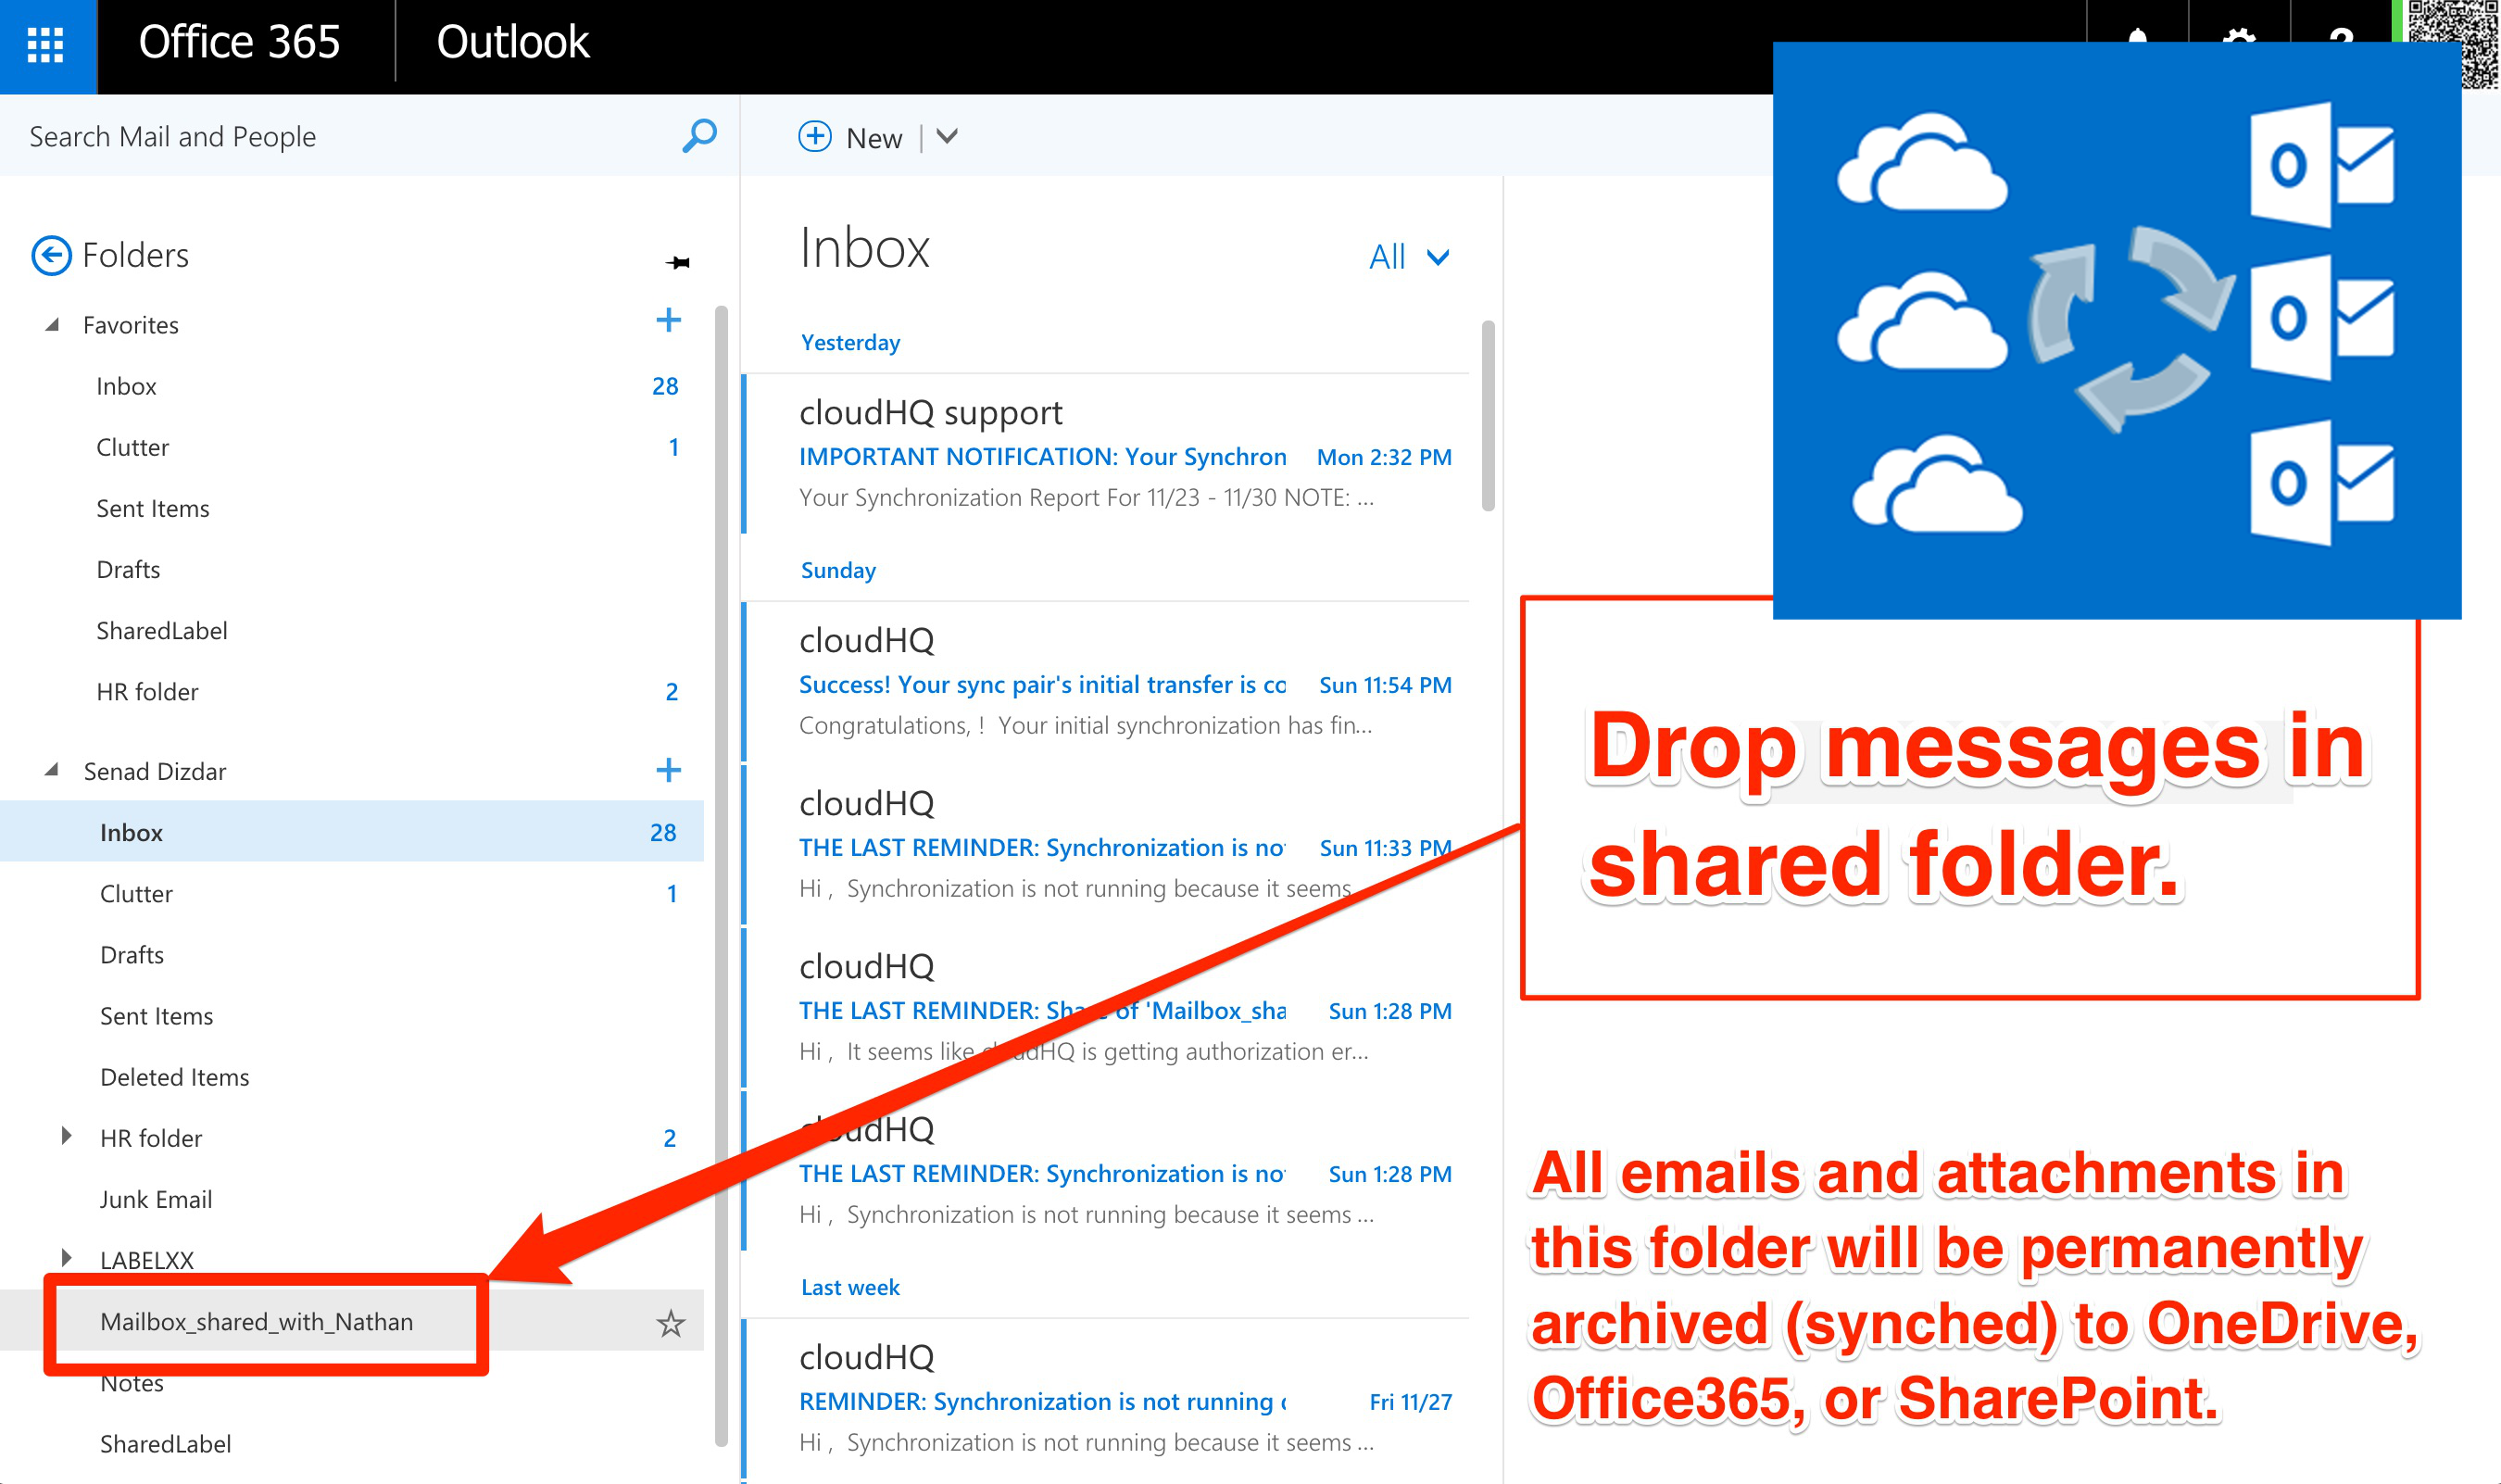 Teams Are Comfortable with Email, but Not OneDrive or SharePoint